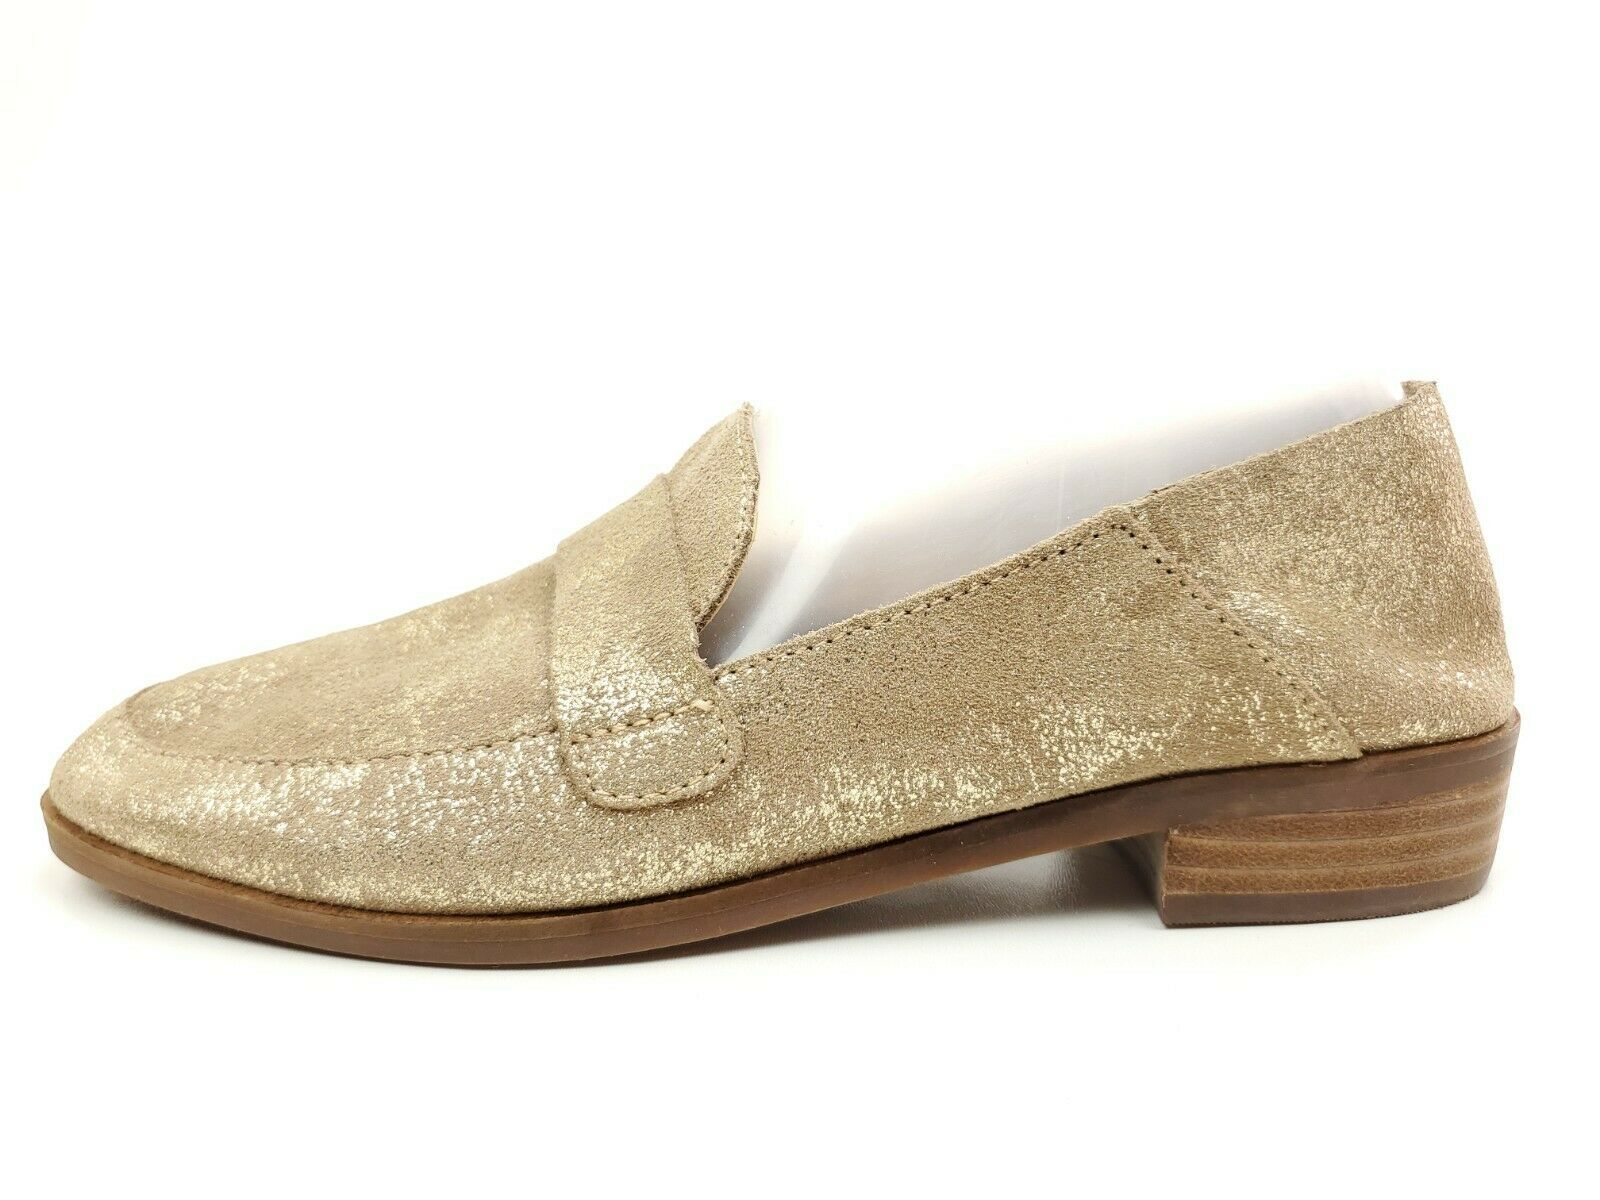 Lucky Brand Chennie Gold Glitter Penny Leather Loafer 7.5 - $29.95